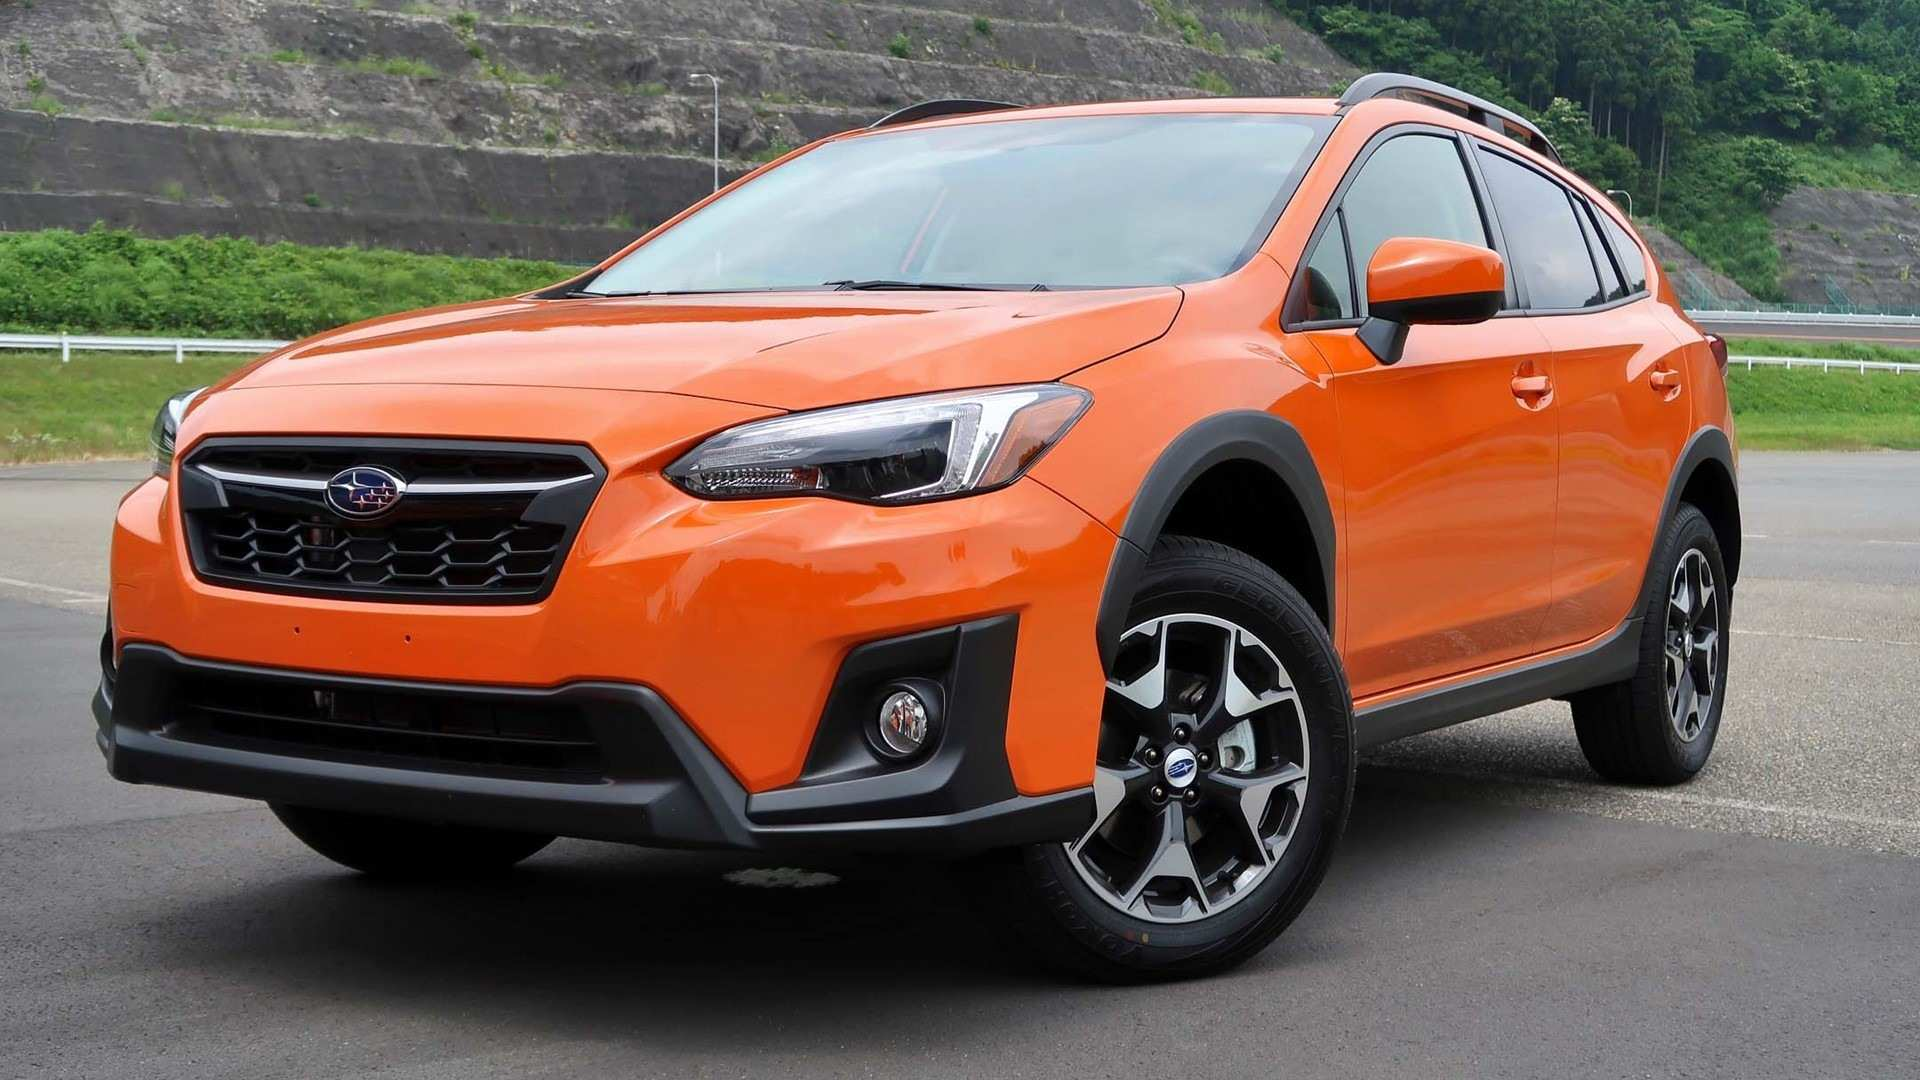 37 All New 2019 Subaru Crosstrek Review Price And Release Date First Drive for 2019 Subaru Crosstrek Review Price And Release Date